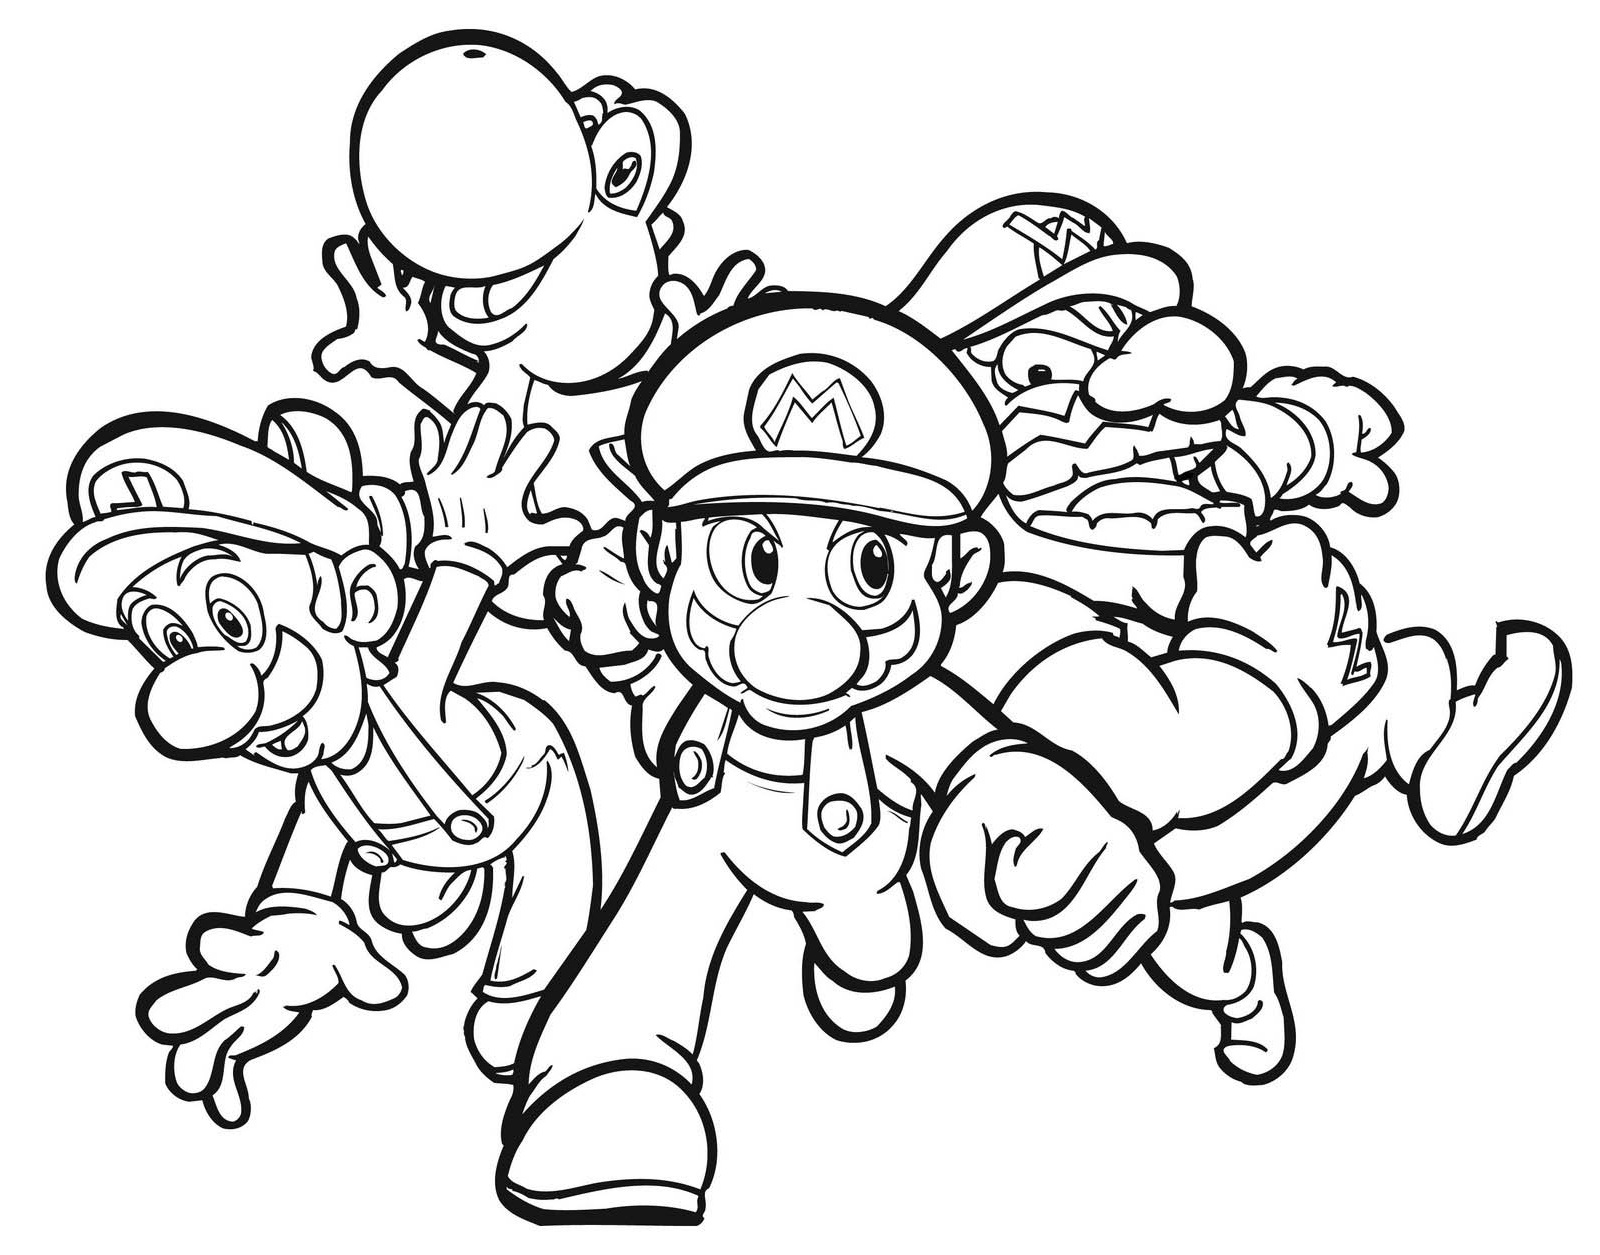 Coloring pages for kids mario bros - Coloring Pages Mario Kart Coloring Pages Mario And Luigi Coloring Page Futpal Com Pages Printable Pages